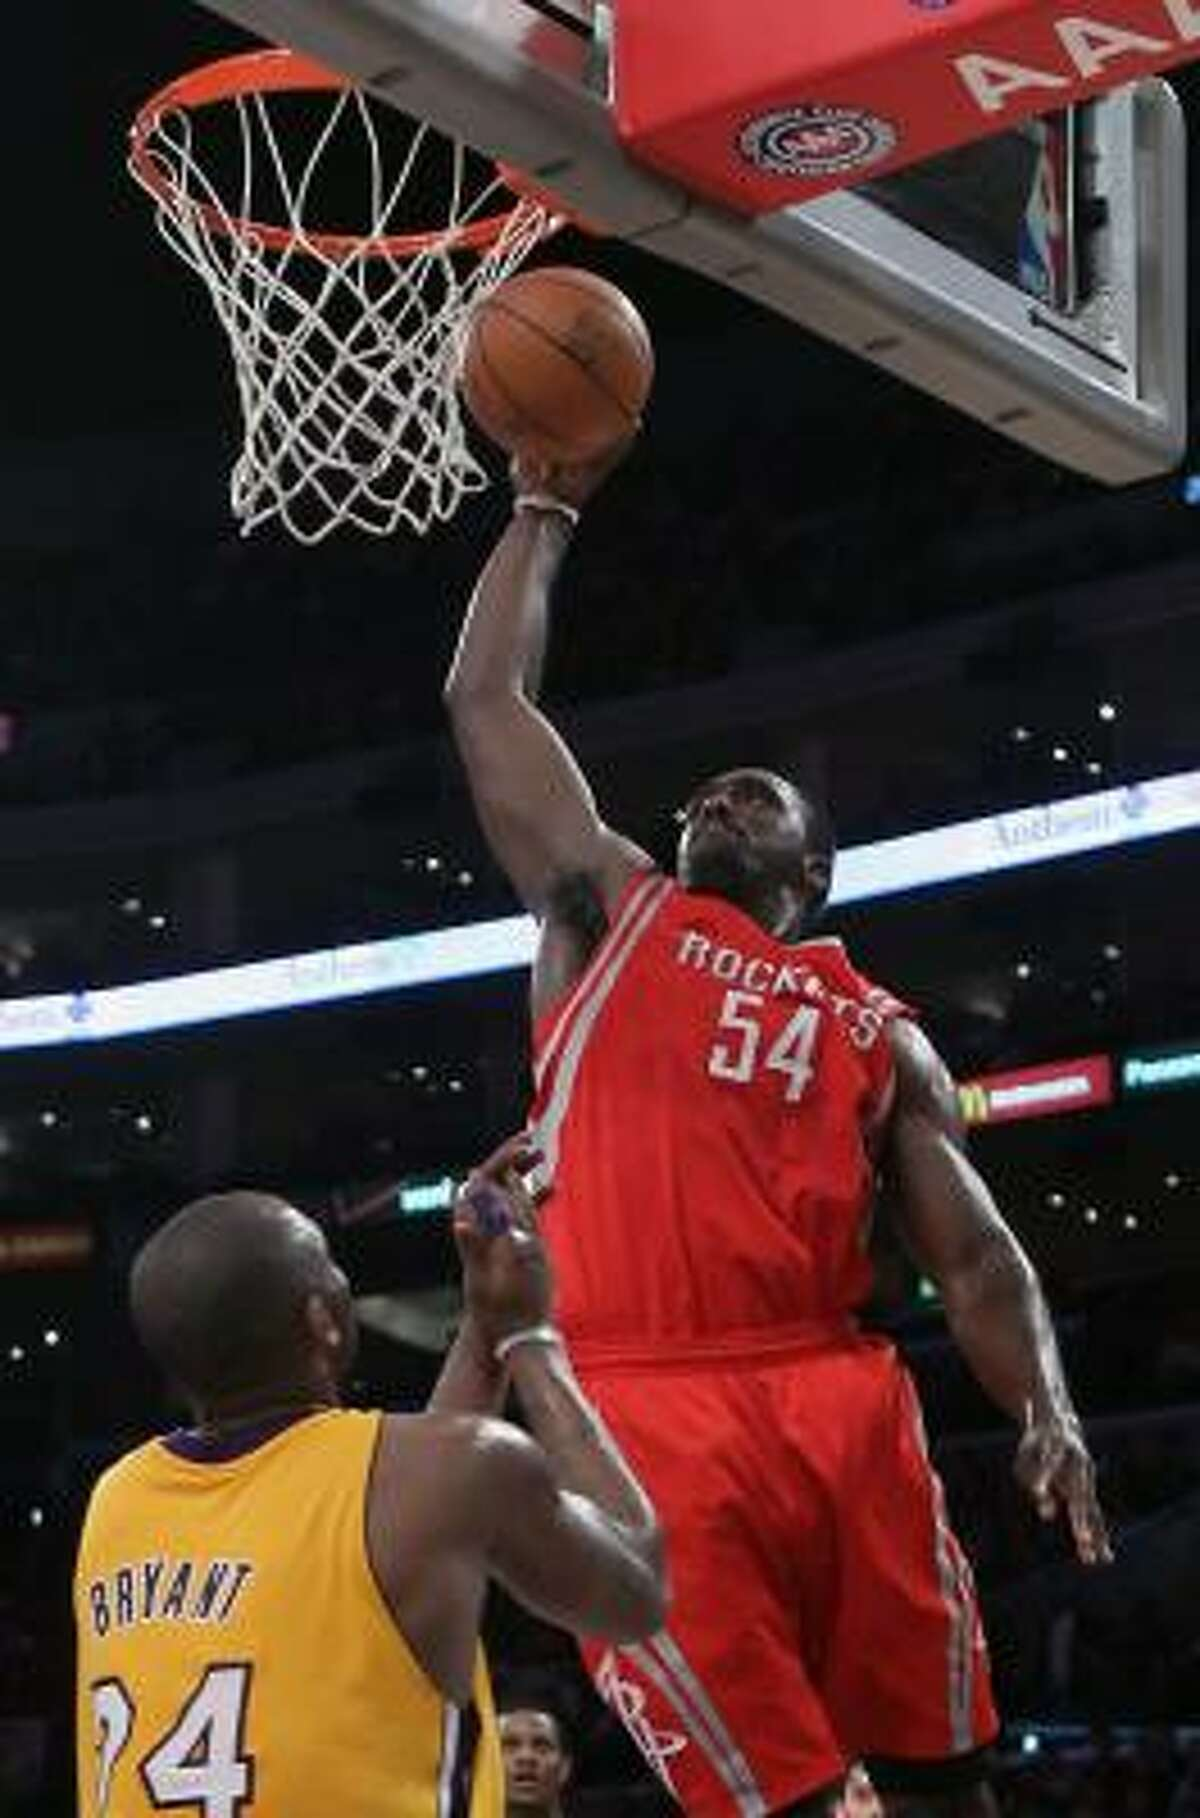 Rockets forward Patrick Patterson looks to throw one down as Lakers guard Kobe Bryant looks on.